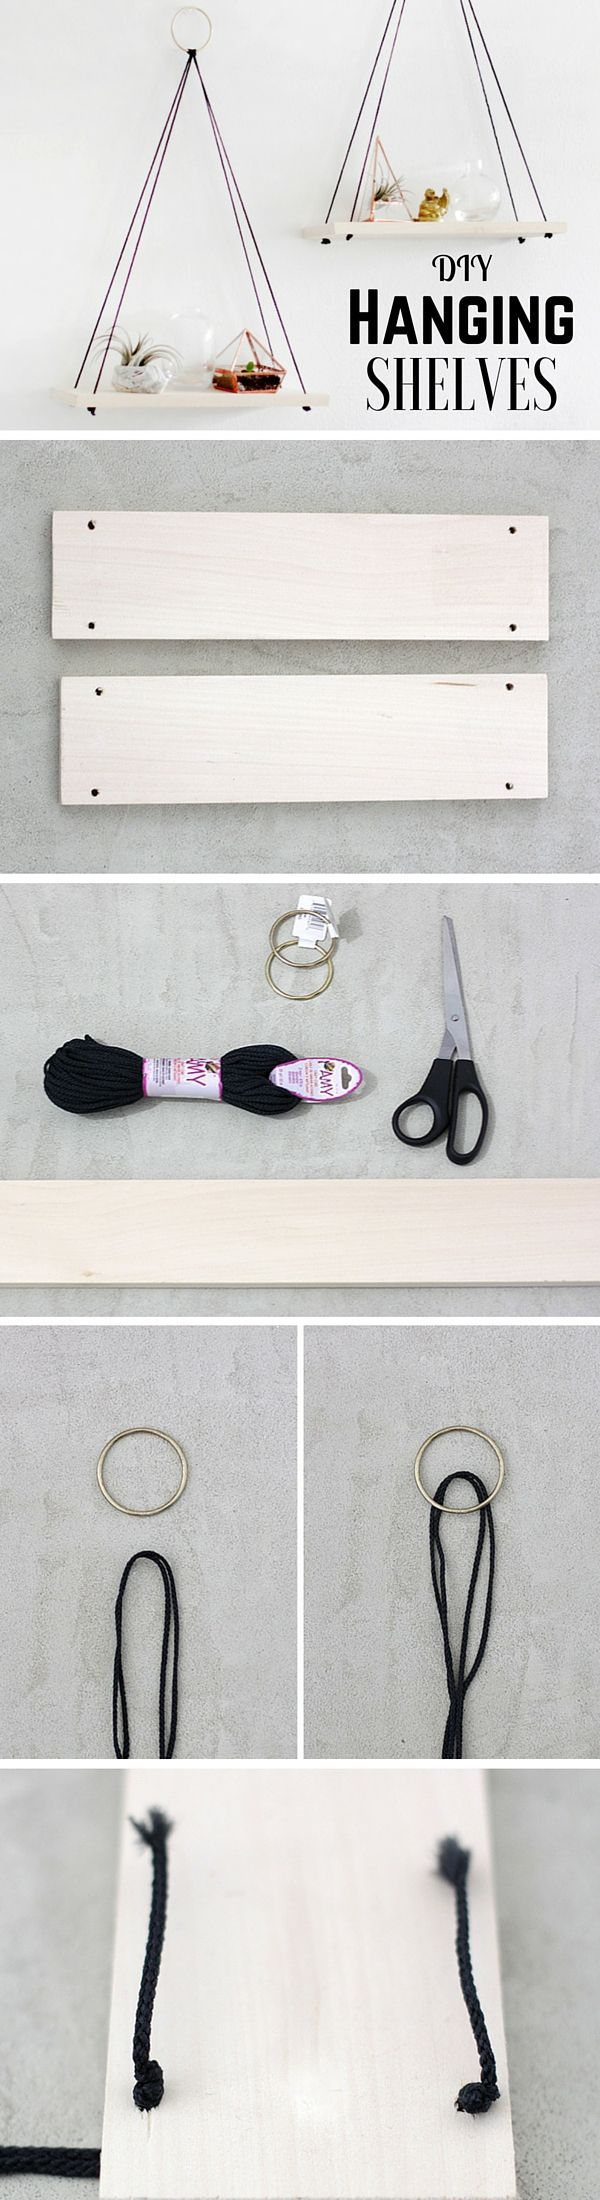 Check out the tutorial on how to make DIY Hanging Shelves @istandarddesign